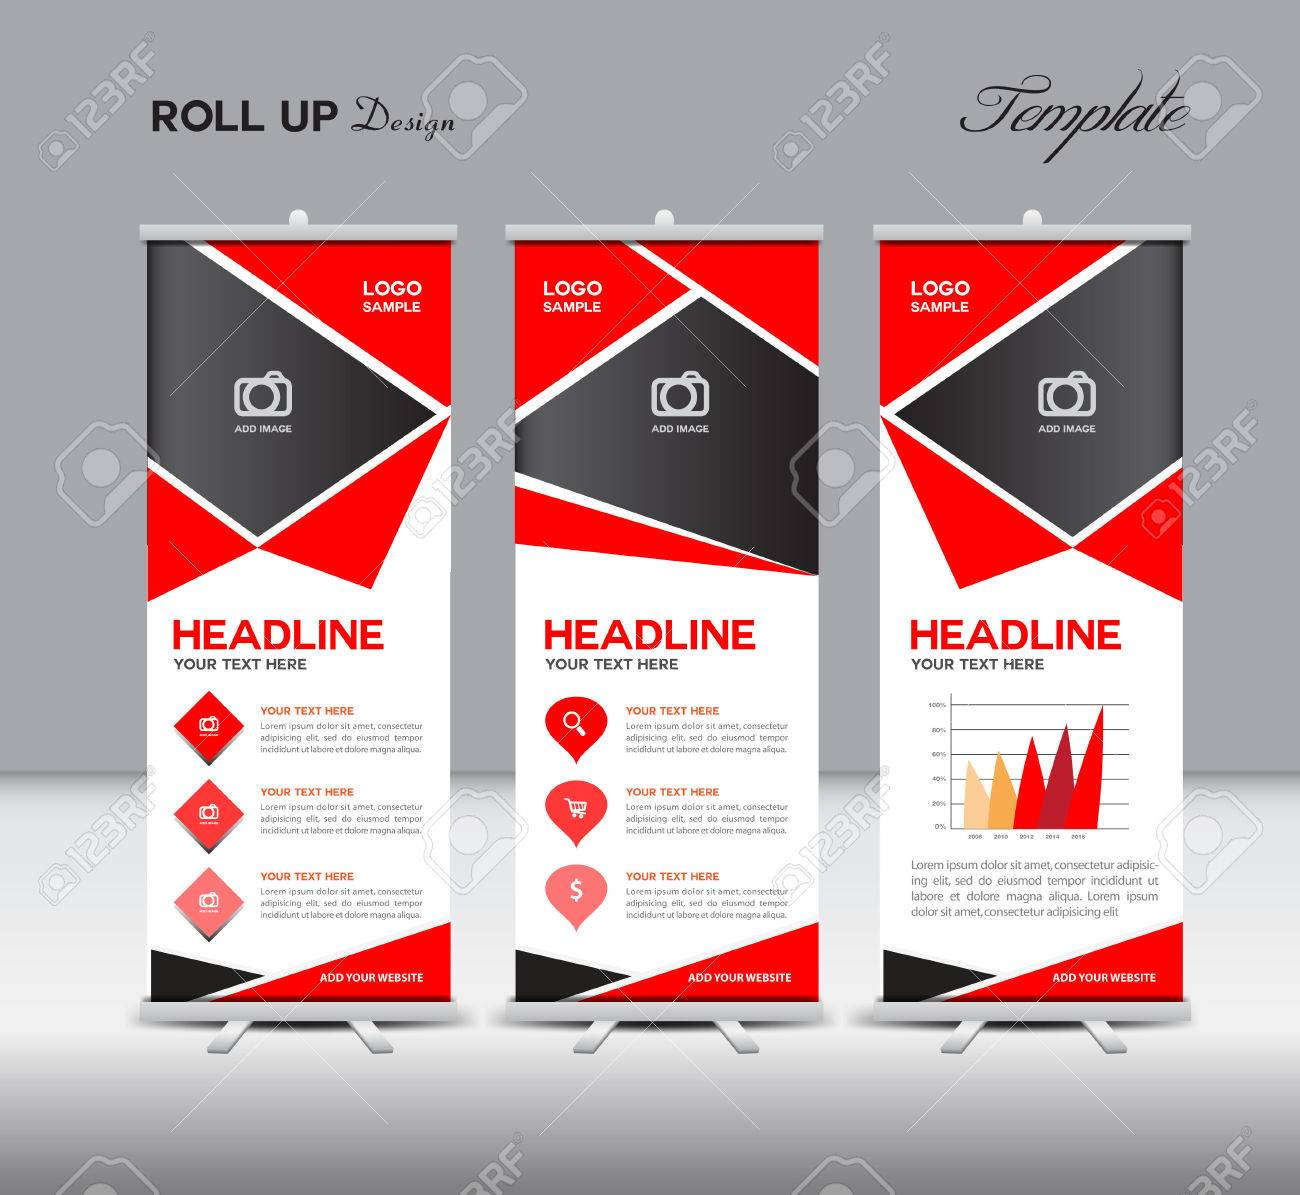 red roll up and info graphics template design stan dy template red roll up and info graphics template design stan dy template advertisement